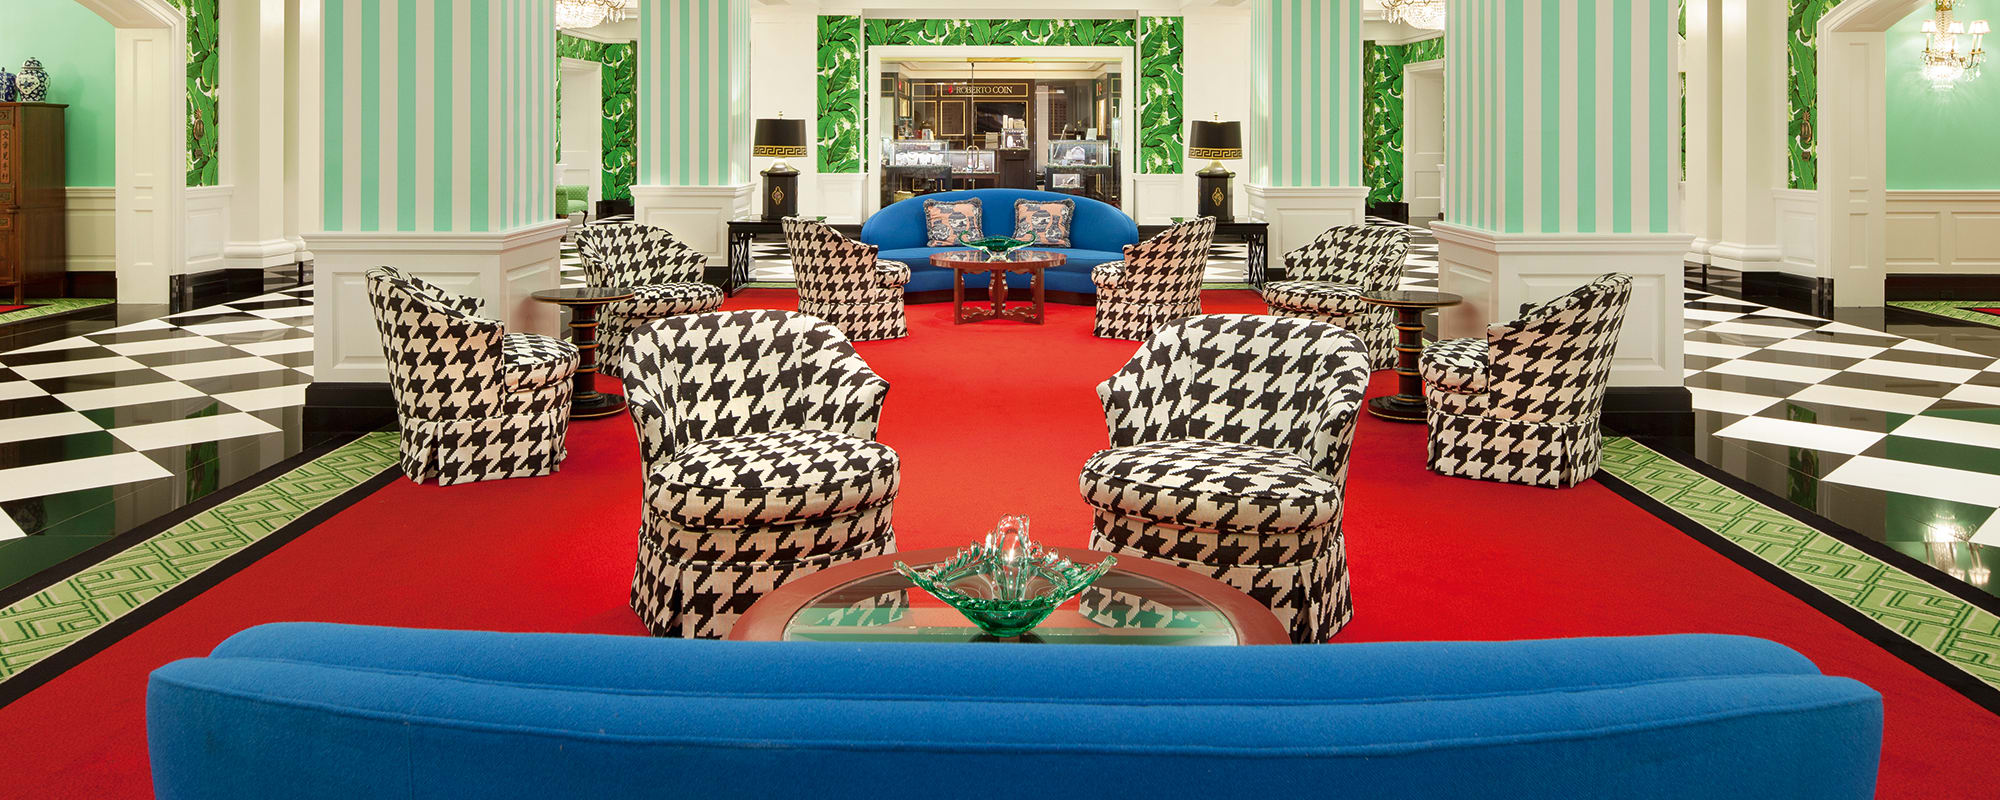 The Greenbrier, Hotel, Boutique USA, Dorothy Draper, Interior Design, Sessel, Couch